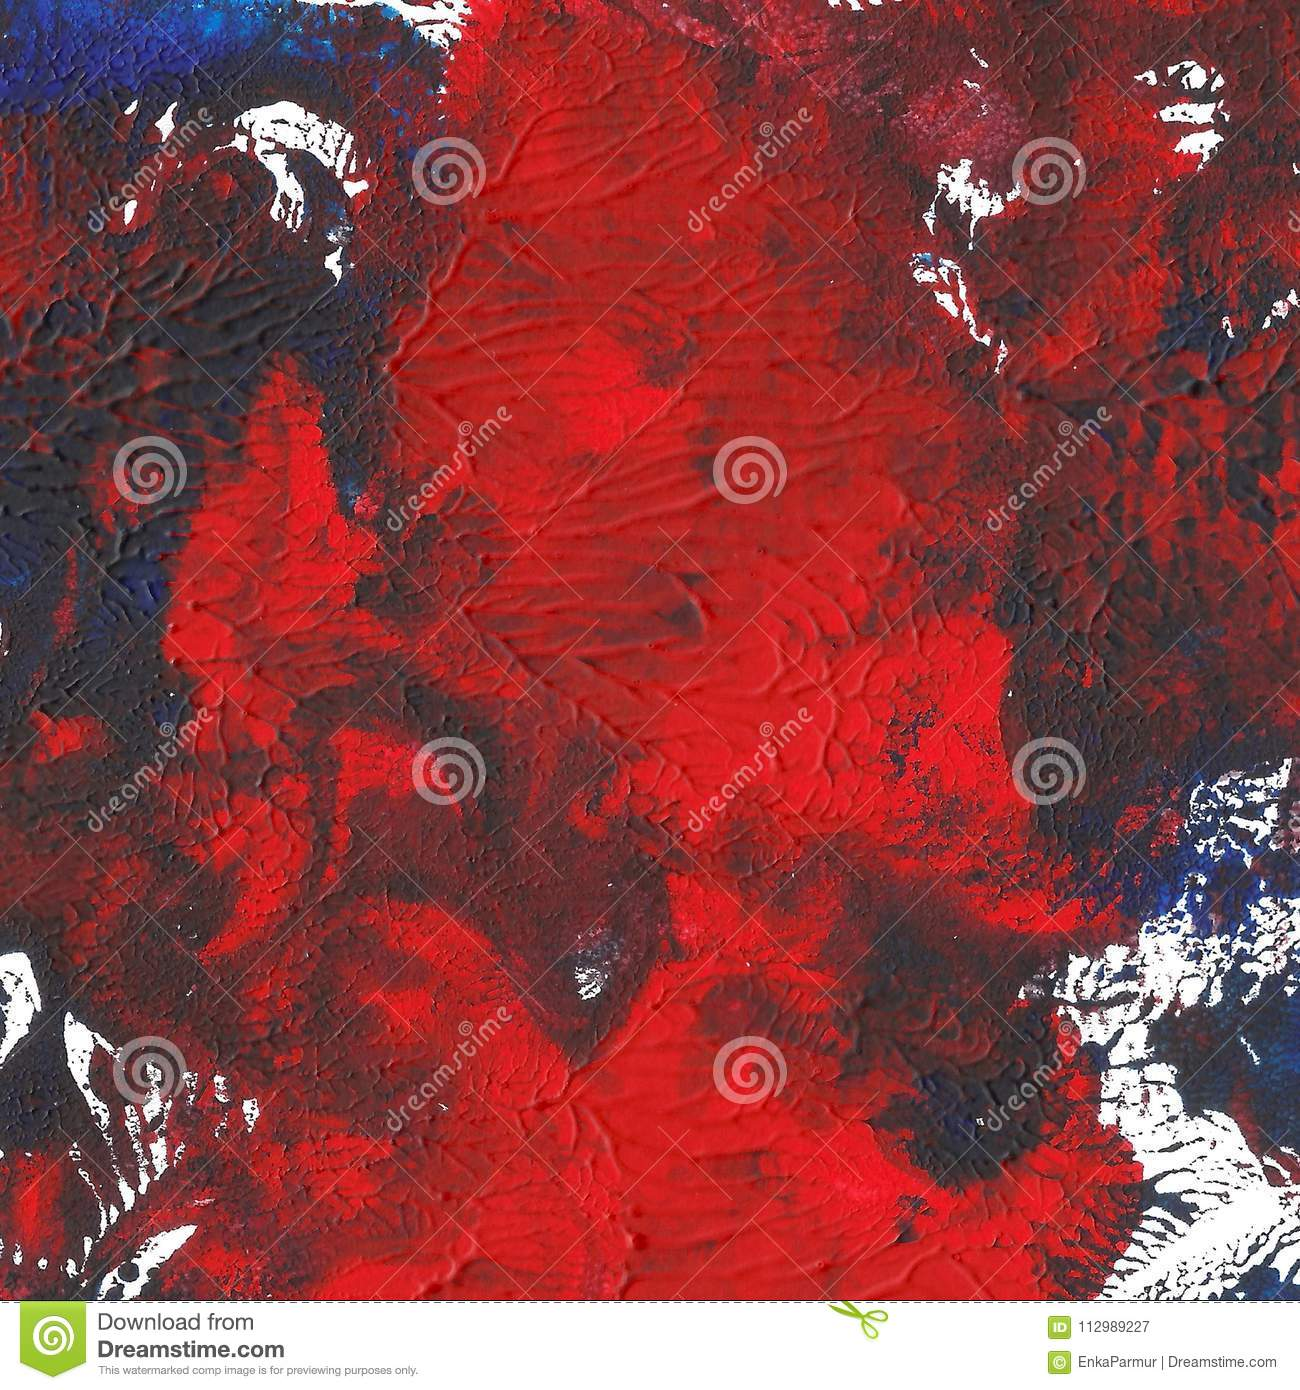 Abstract acrylic painted background. Red blue textured vibrant color. Grunge template for your design.